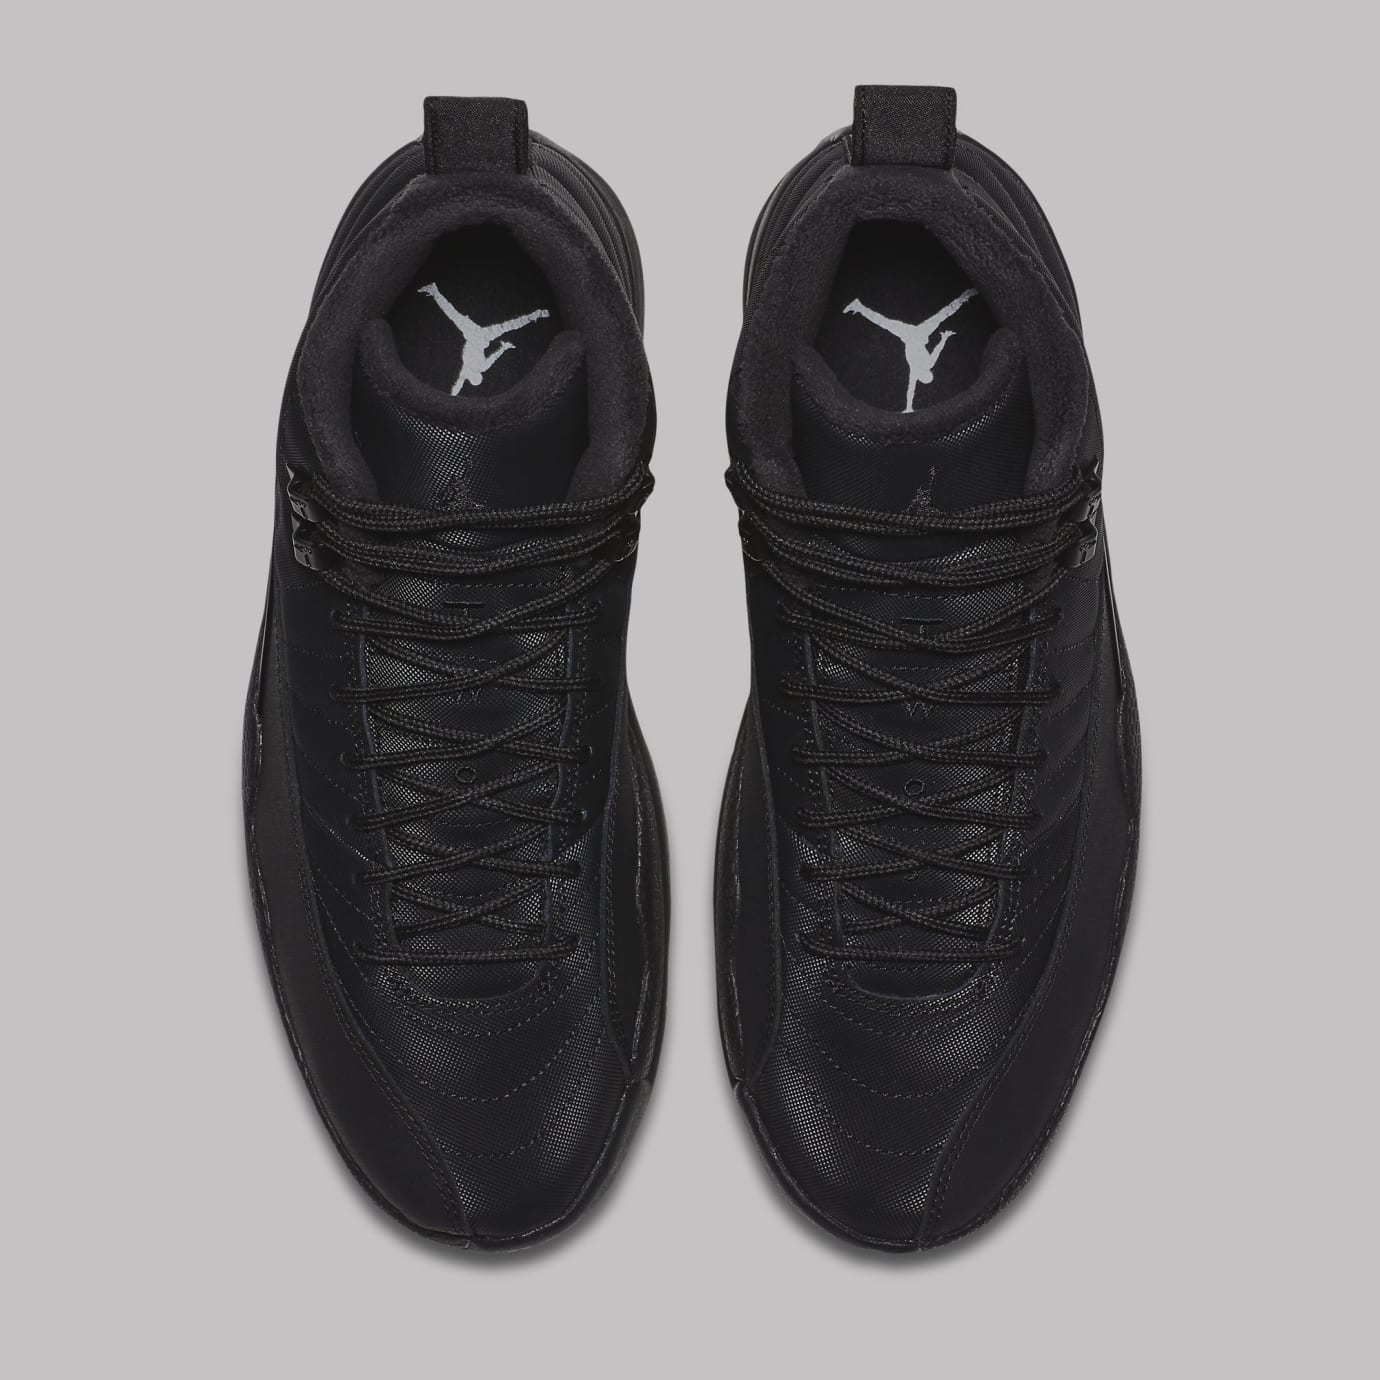 8e9b5491a75 Image via Nike air-jordan-12-winterized-black-bq6851-001-top